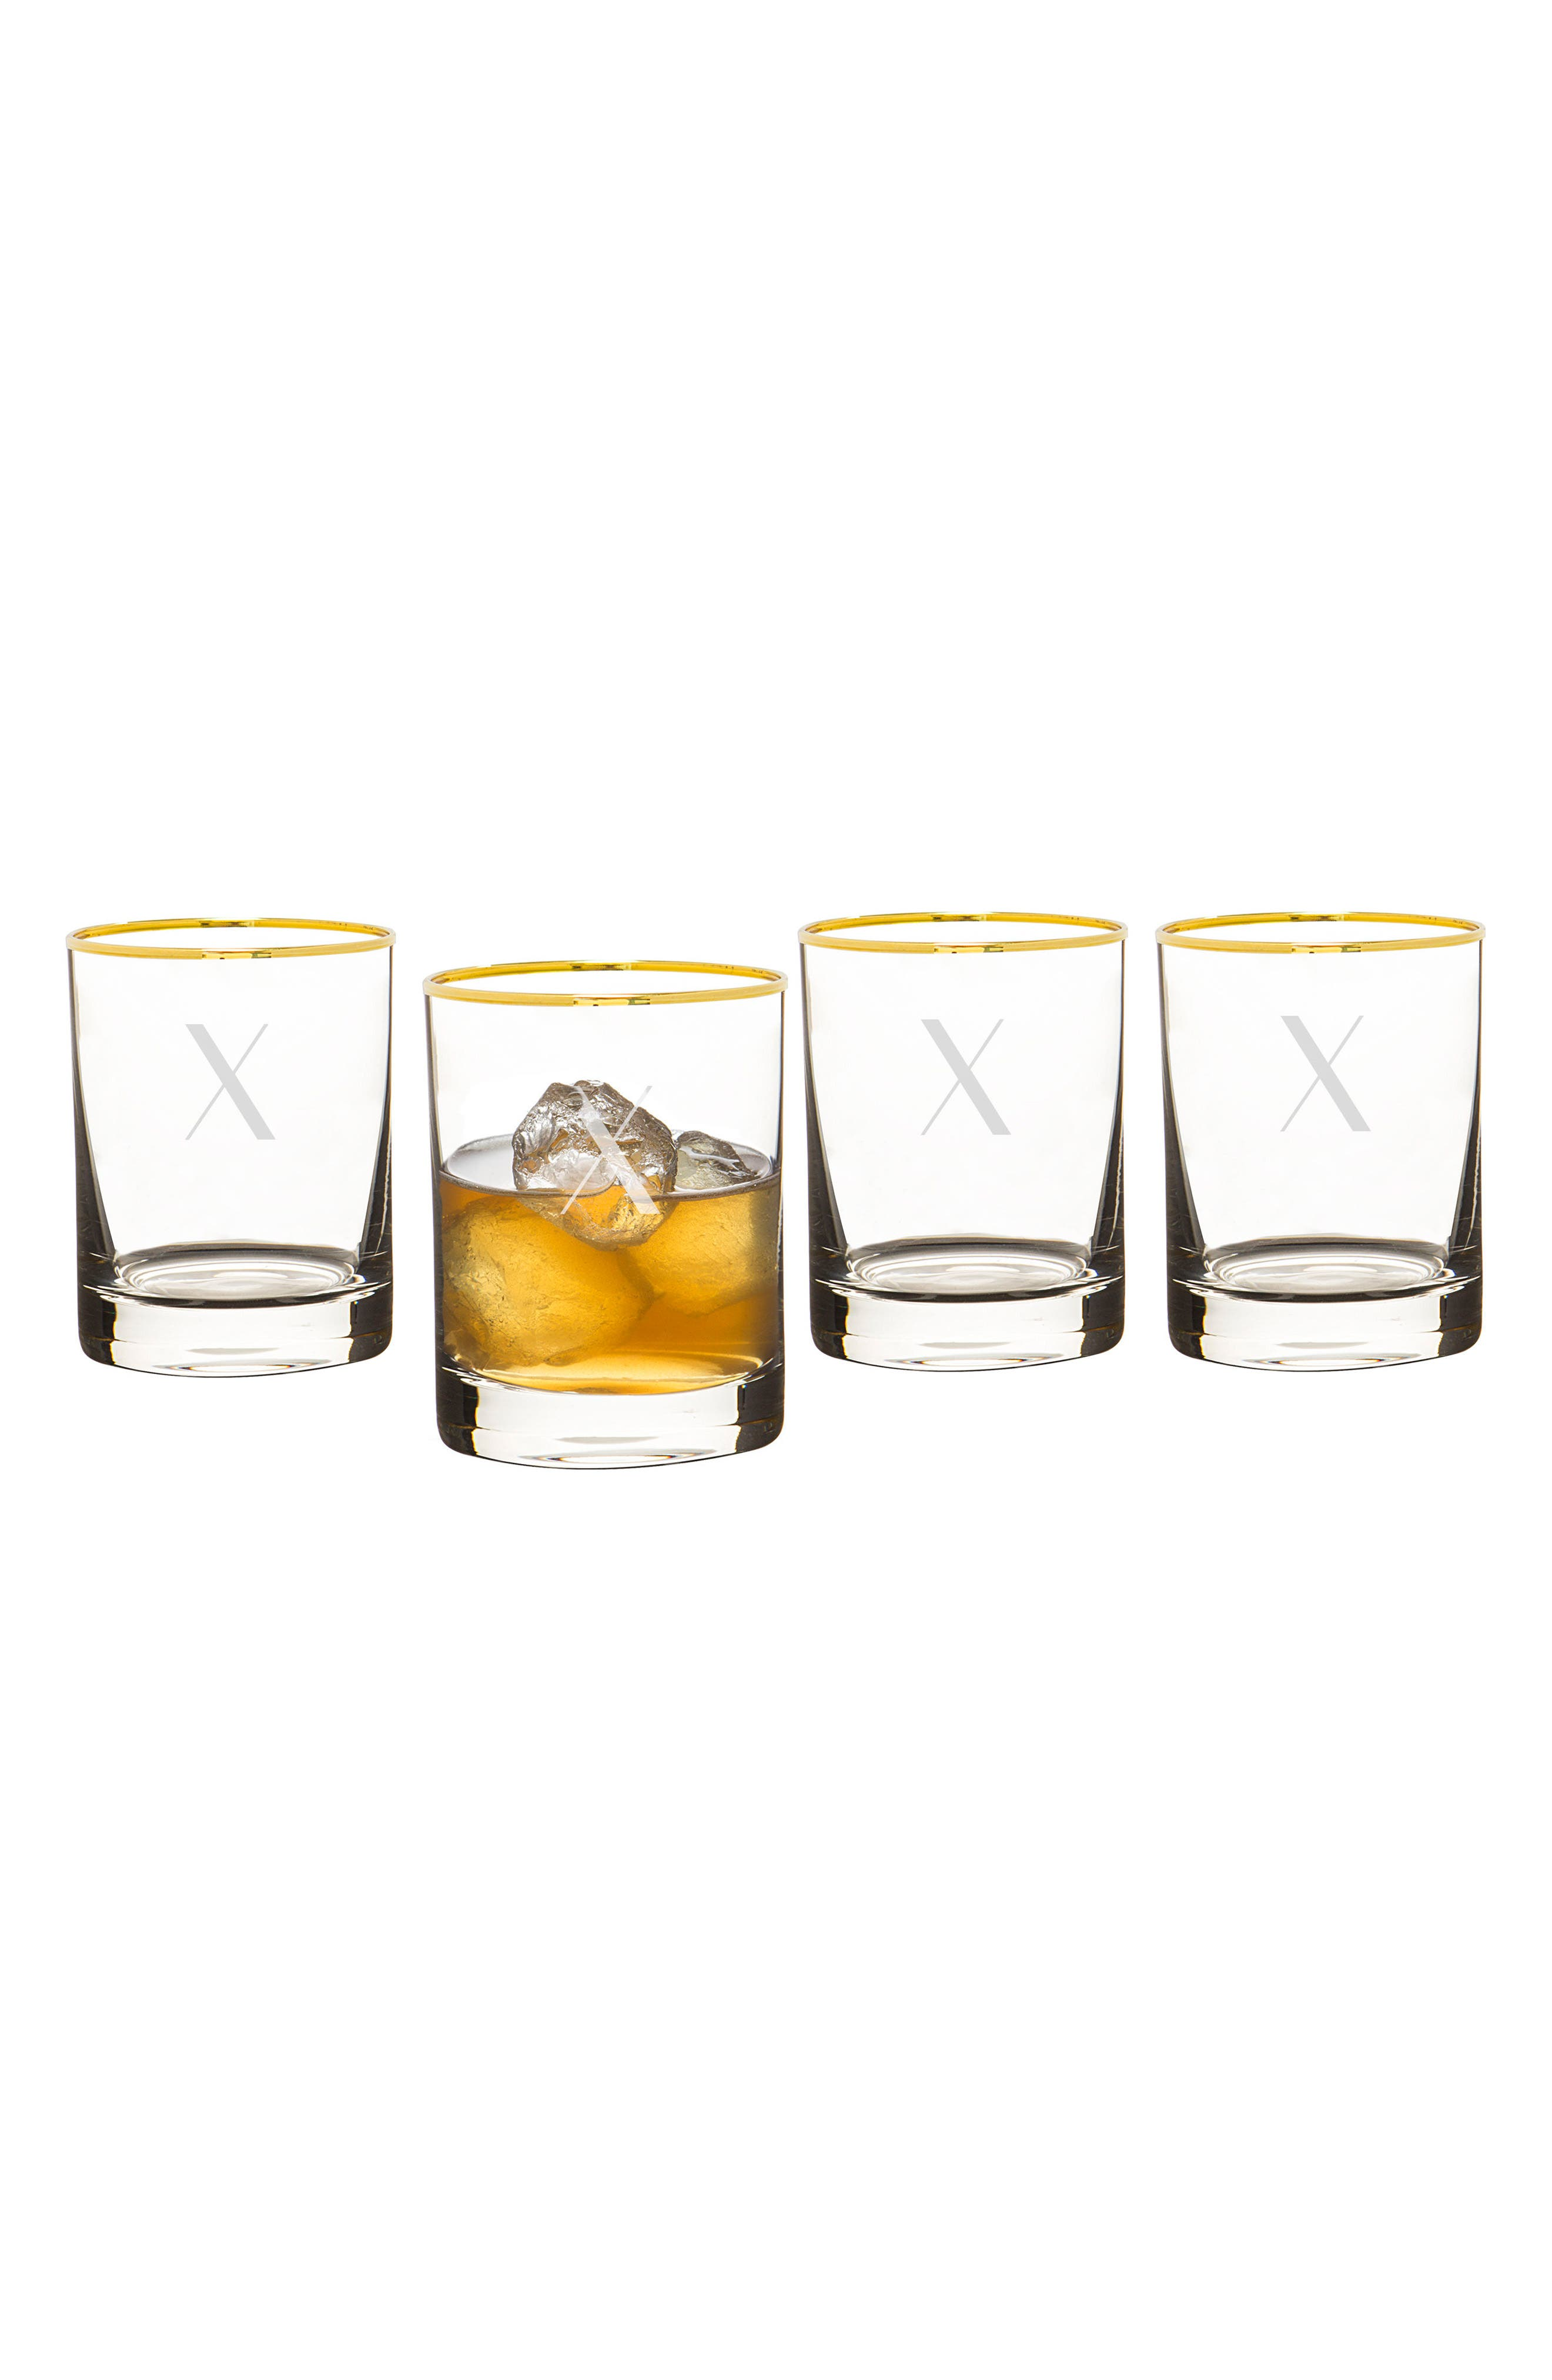 Monogram Set of 4 Double Old Fashioned Glasses,                             Main thumbnail 24, color,